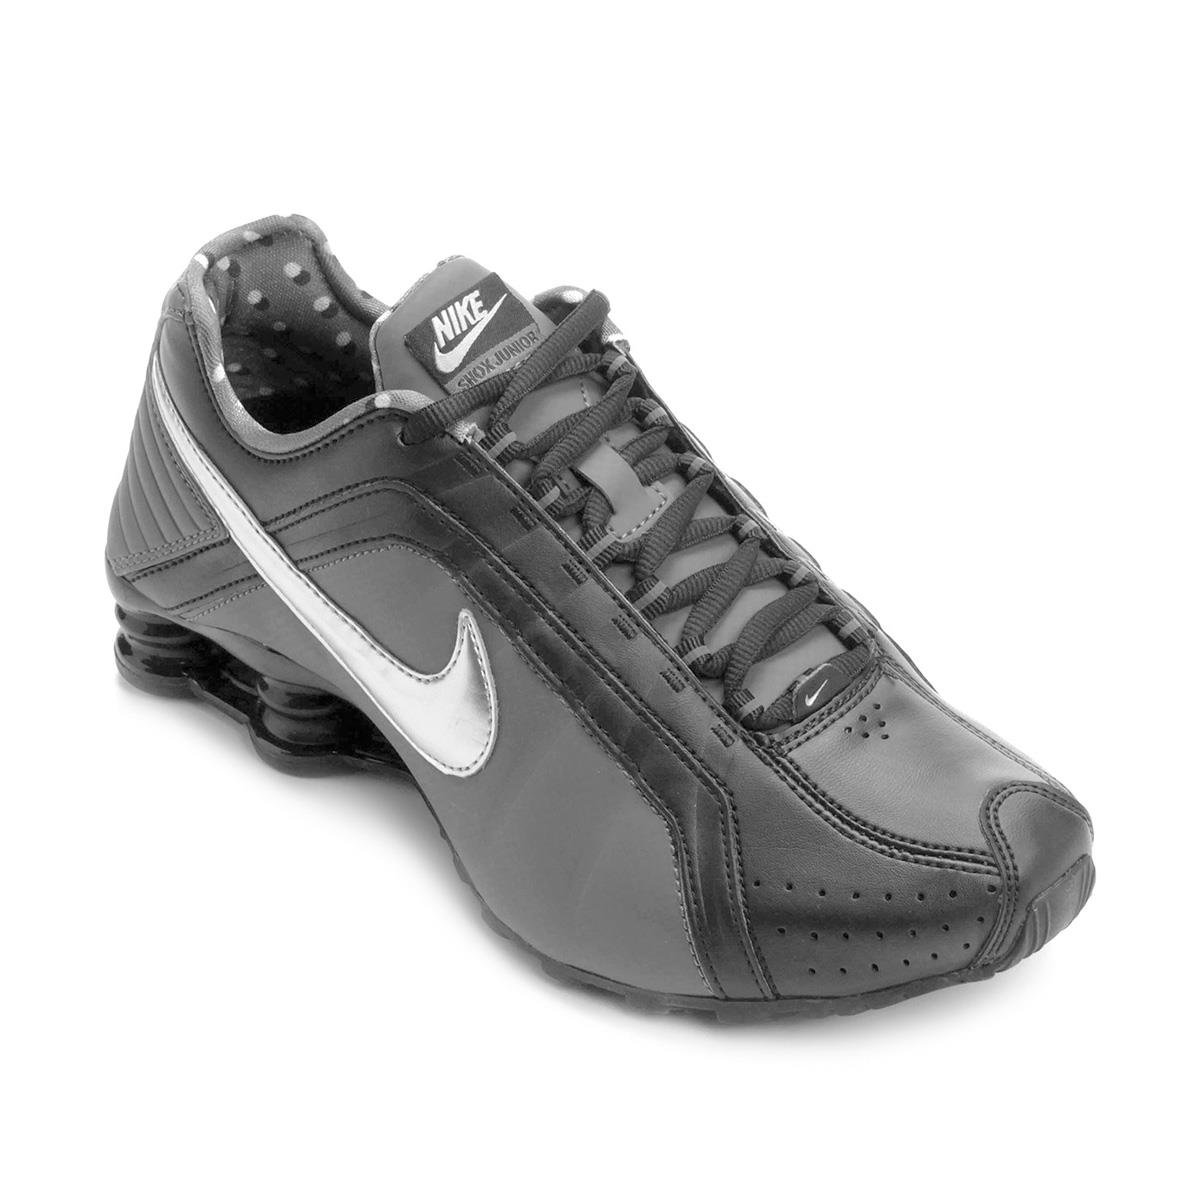 reputable site 5005c 92a8c Tênis Nike Shox Junior Feminino